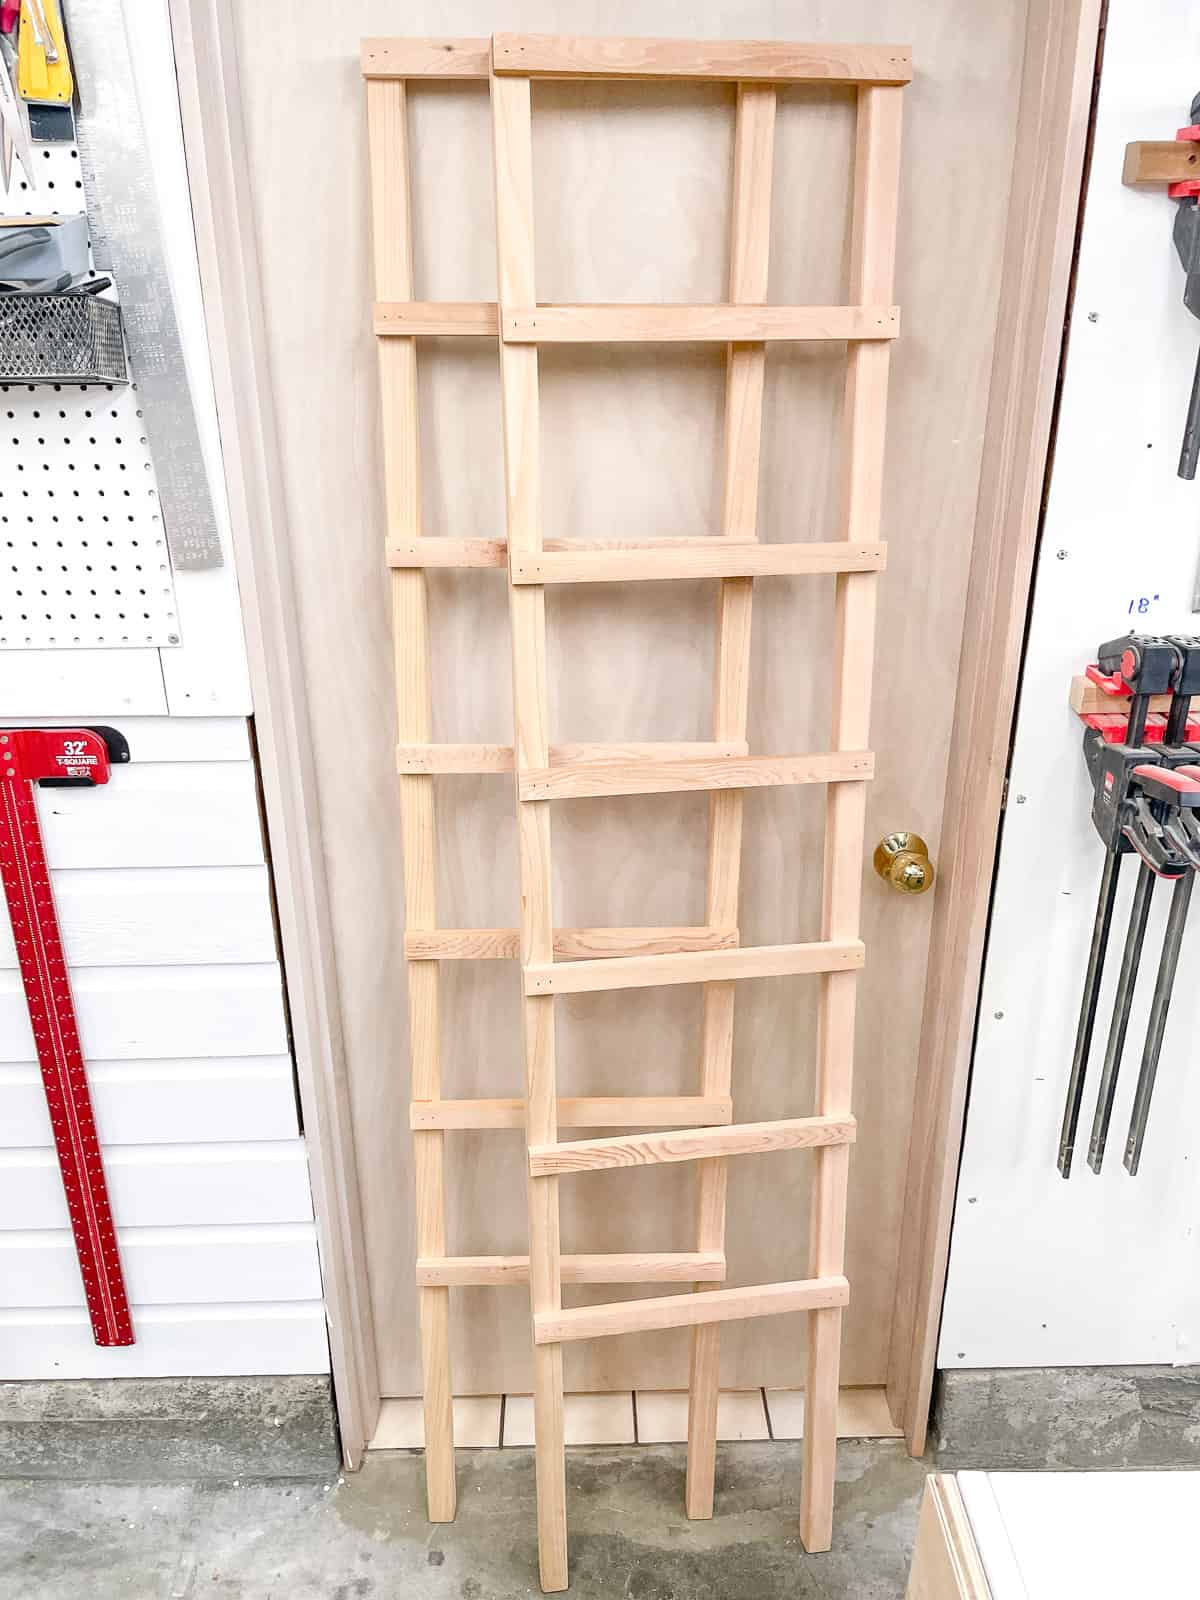 legs of homemade tomato cage assembled and leaning against door